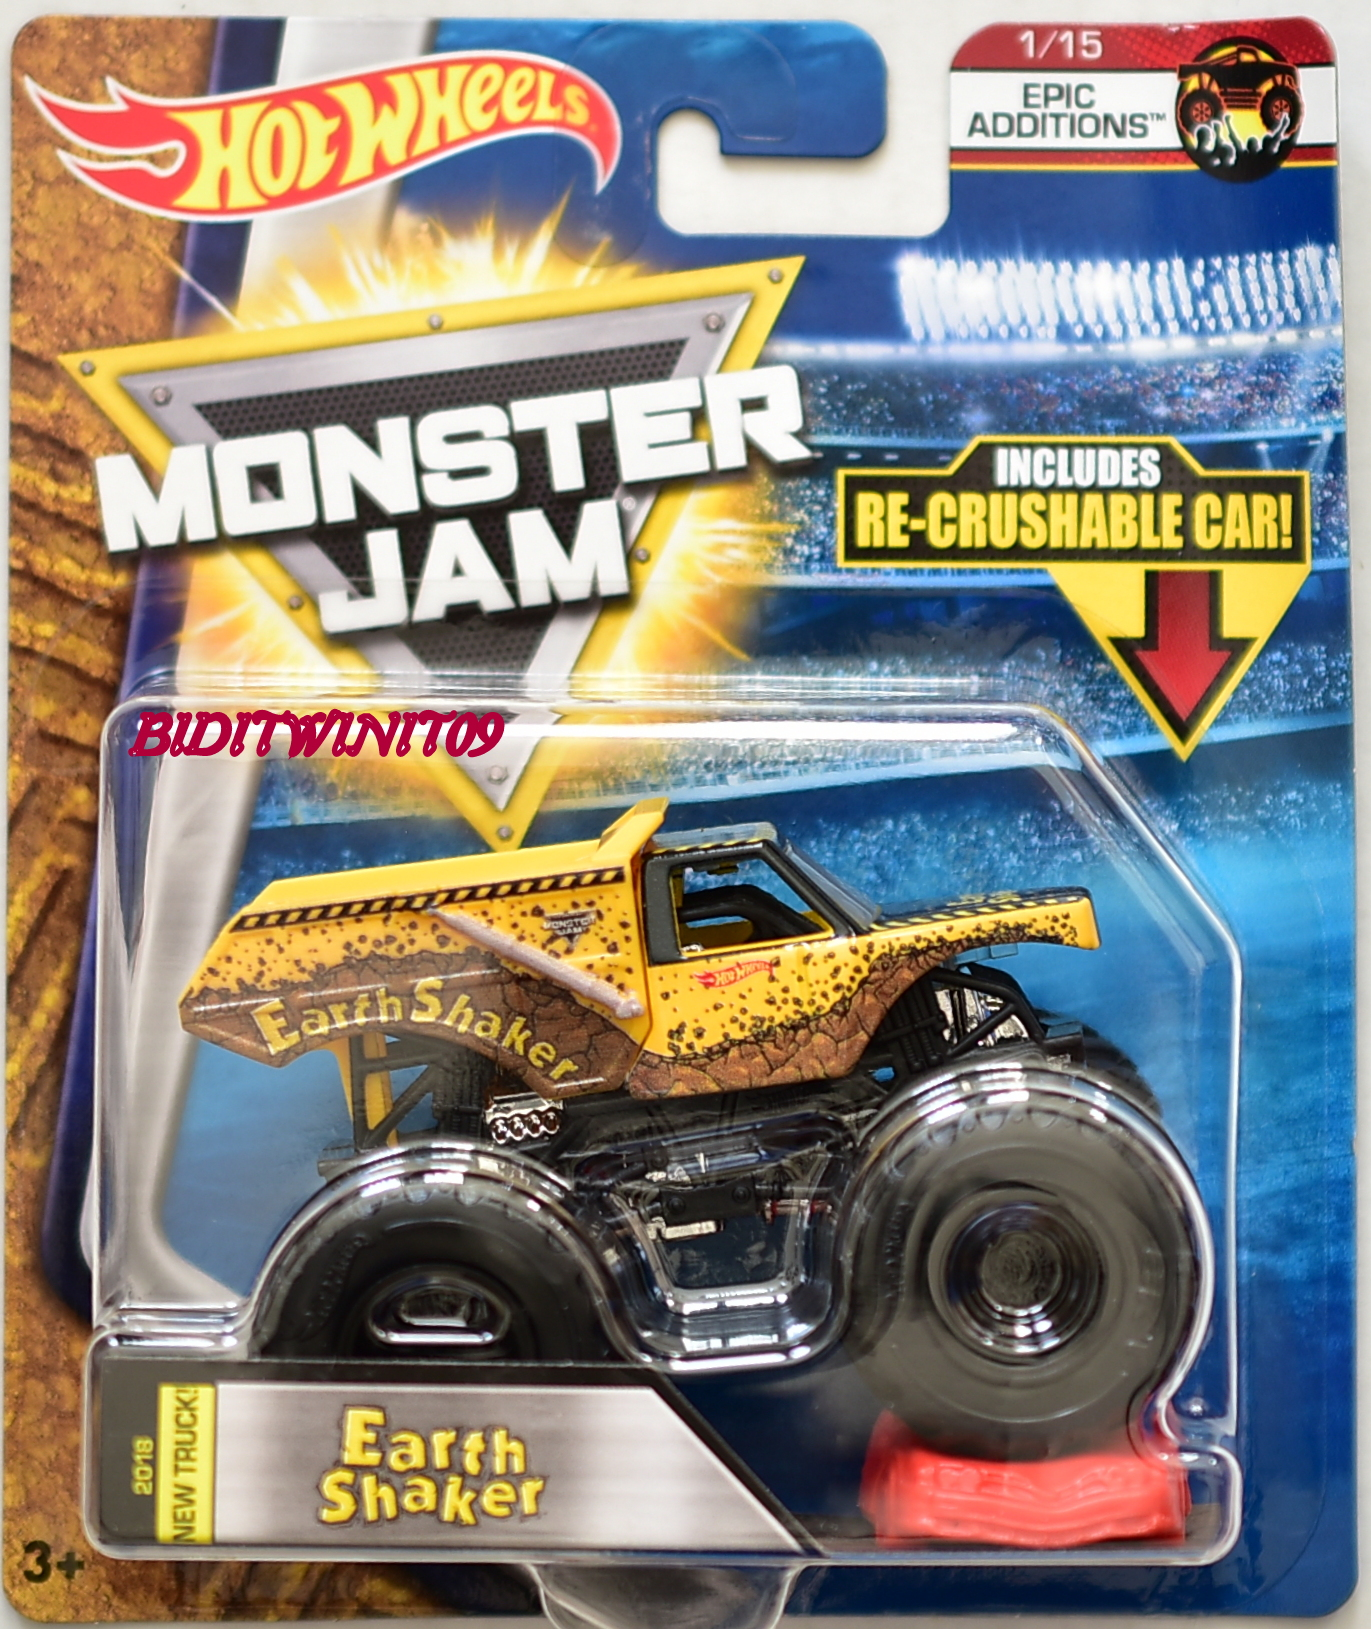 HOT WHEELS 2017 MONSTER JAM W/ RE-CRUSHABLE CAR EARTH SHAKER EPIC ADDITIONS